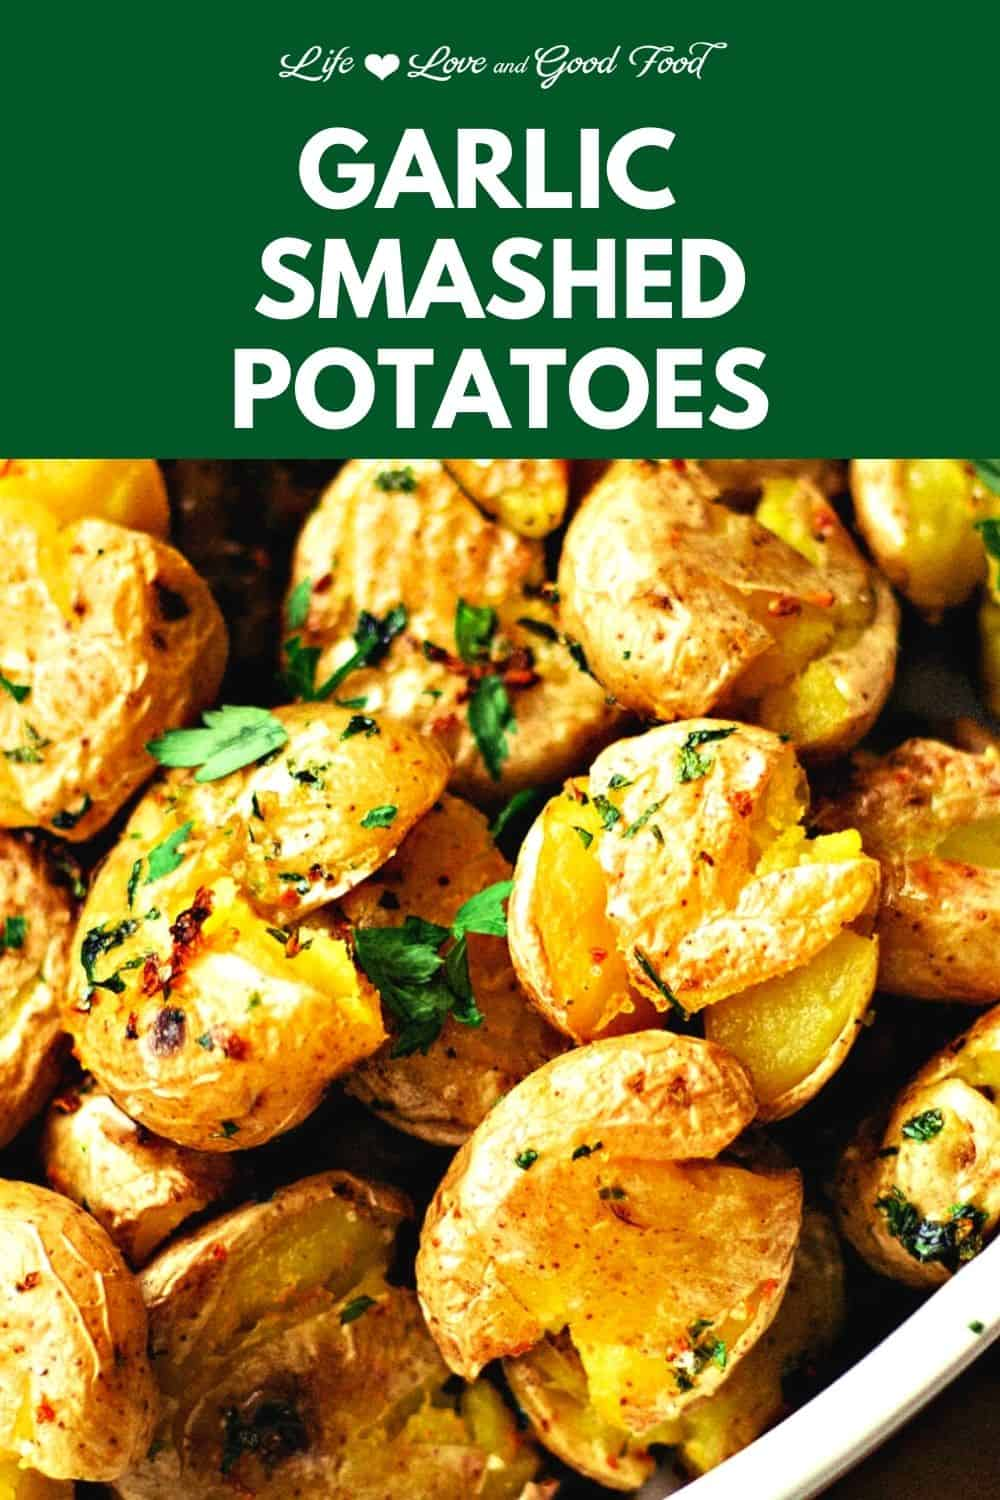 Extremely tender on the inside and crispy on the outside, these lemon garlic smashed potatoes make a delicious side dish for any meal. Start by boiling Yukon Gold potatoes until they are fork tender and then finish them in the oven. Smashed and seasoned with parsley, garlic, and freshly grated lemon zest, these potatoes are hands-down absolutely delicious and addictive.